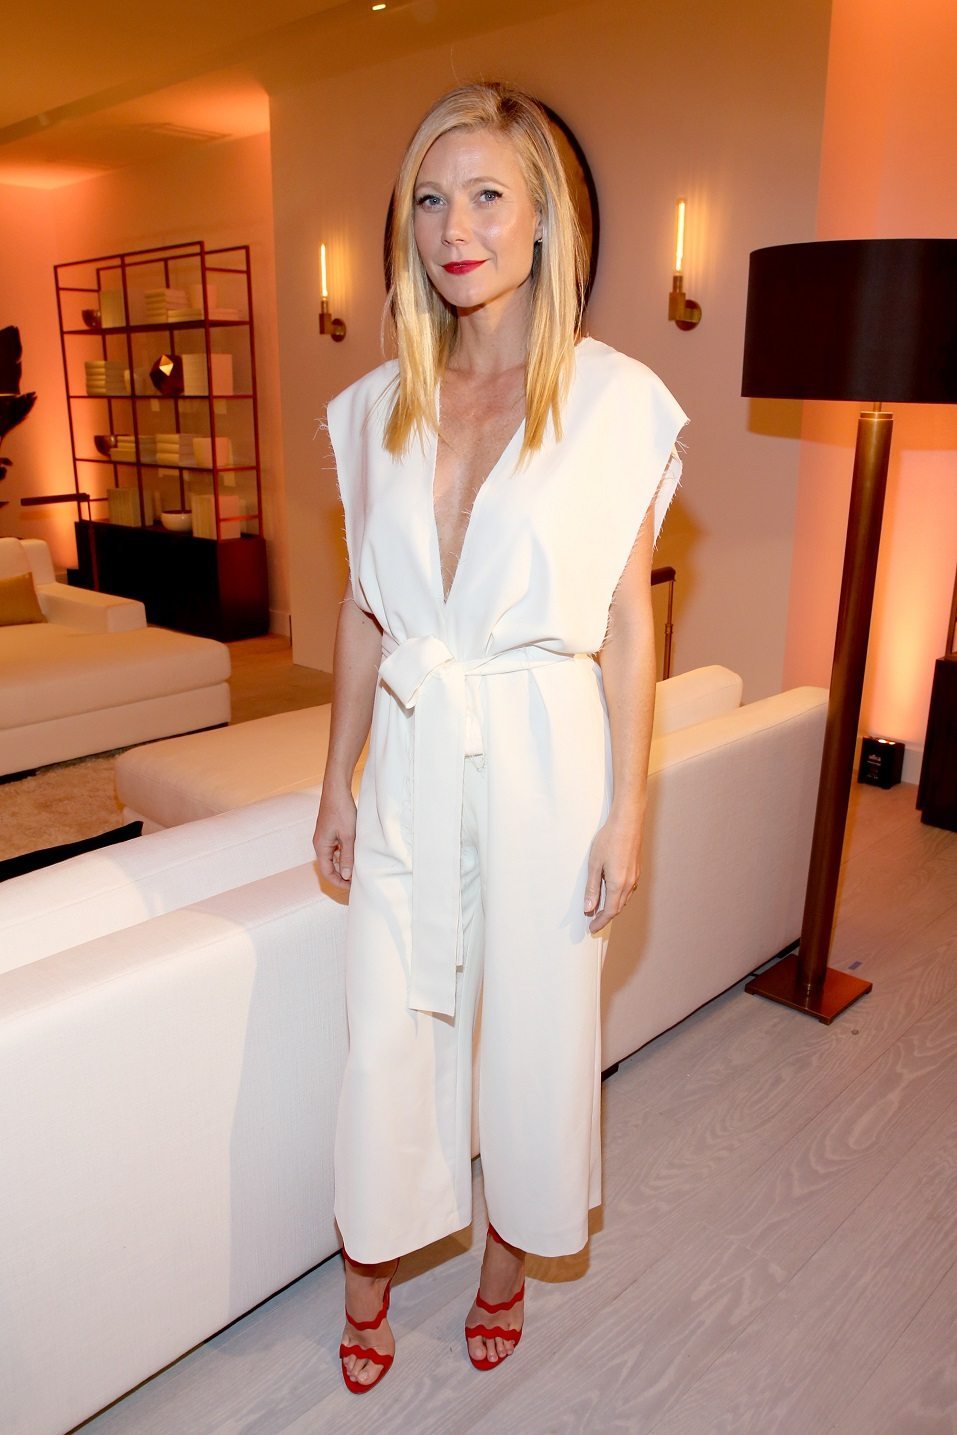 Actress Gwyneth Paltrow attends the unveiling of the RH Modern Gallery in Los Angeles